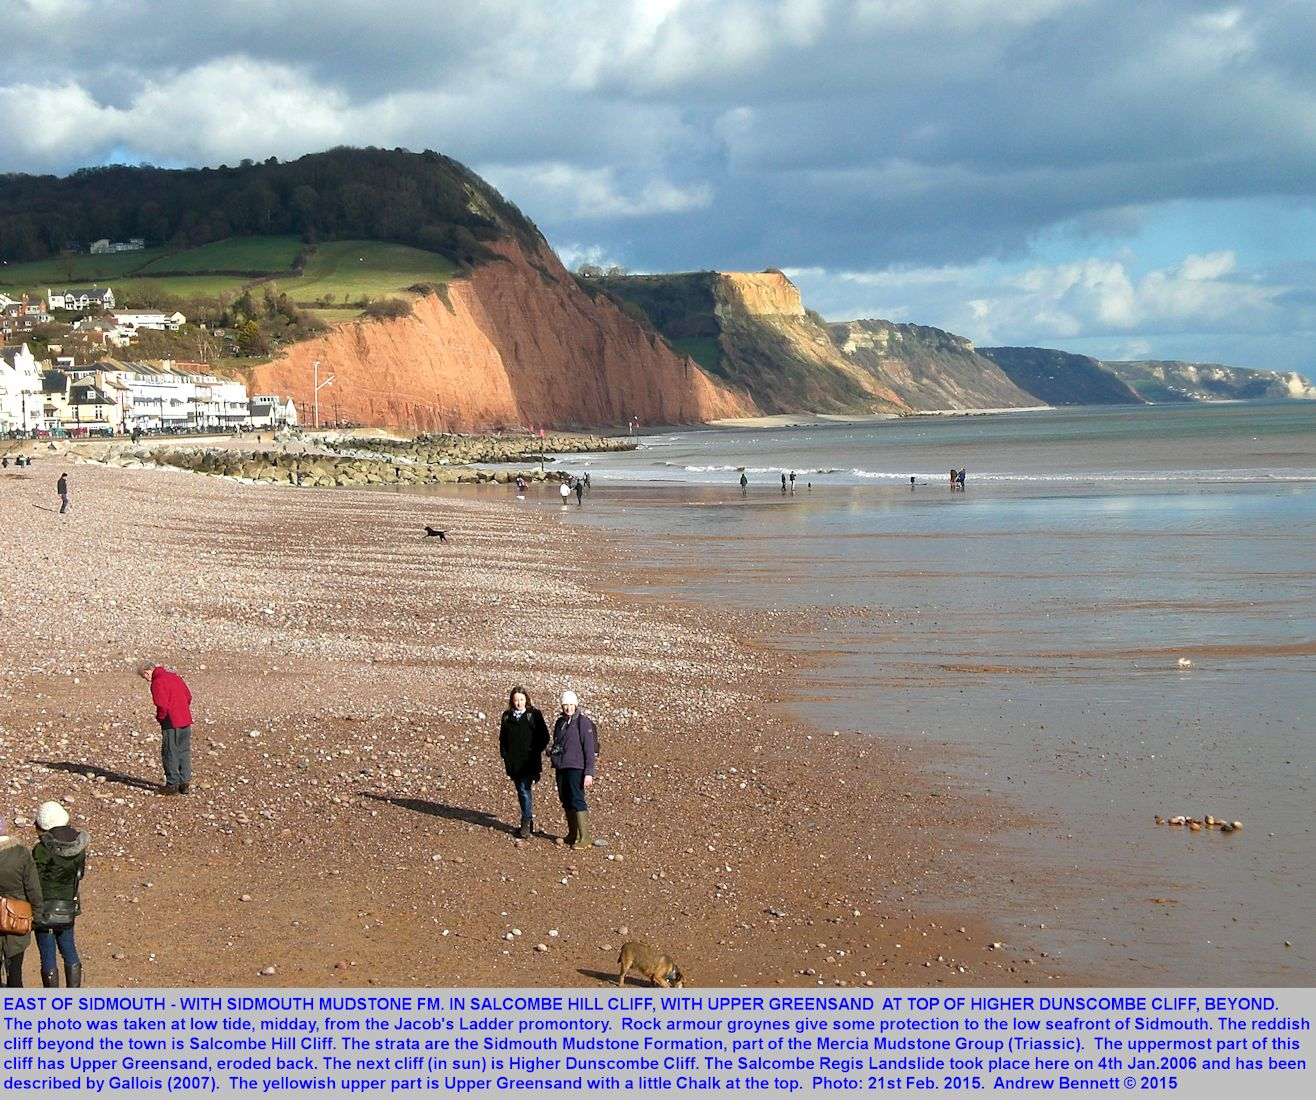 A general view of the cliffs east of Sidmouth, Devon, including Salcombe Hill Cliff and Higher Dunscombe Cliff, showing the Sidmouth Mudstone Formation of the Mercia Mudstone Group, with Upper Greensand lying unconformably above, February 2015